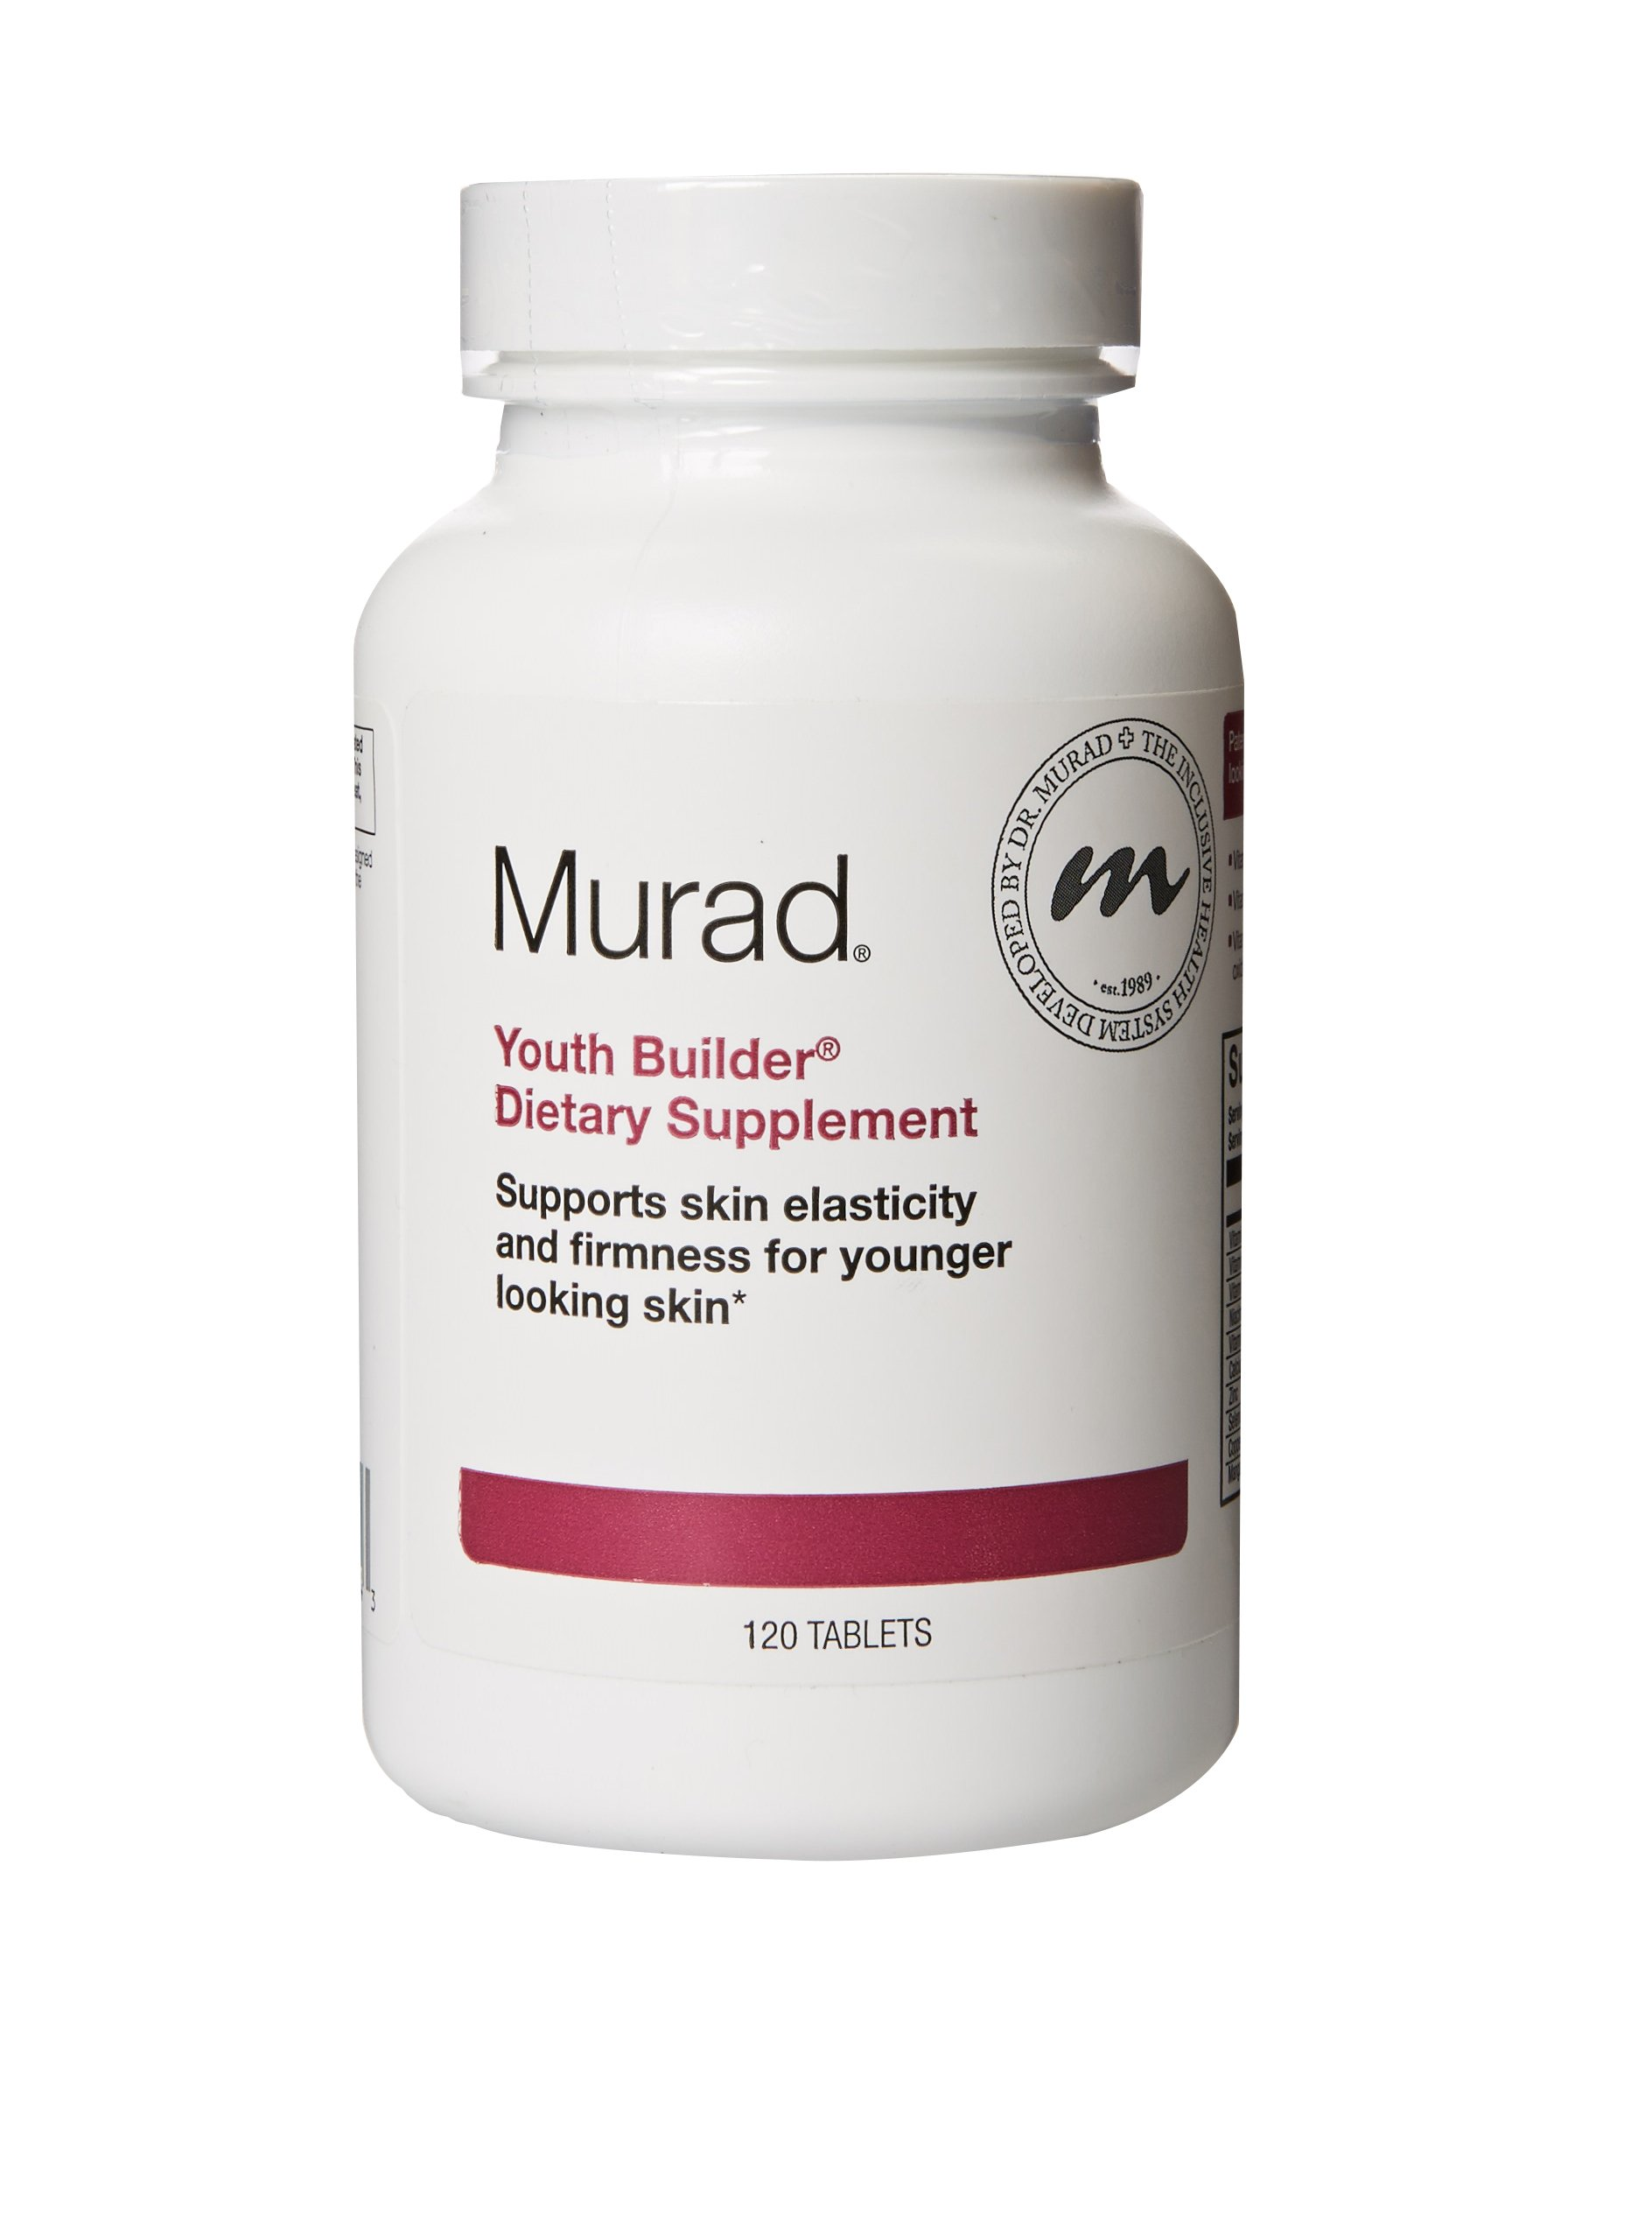 Murad Youth Builder Dietary Supplement, 120 tablets (60 day supply)